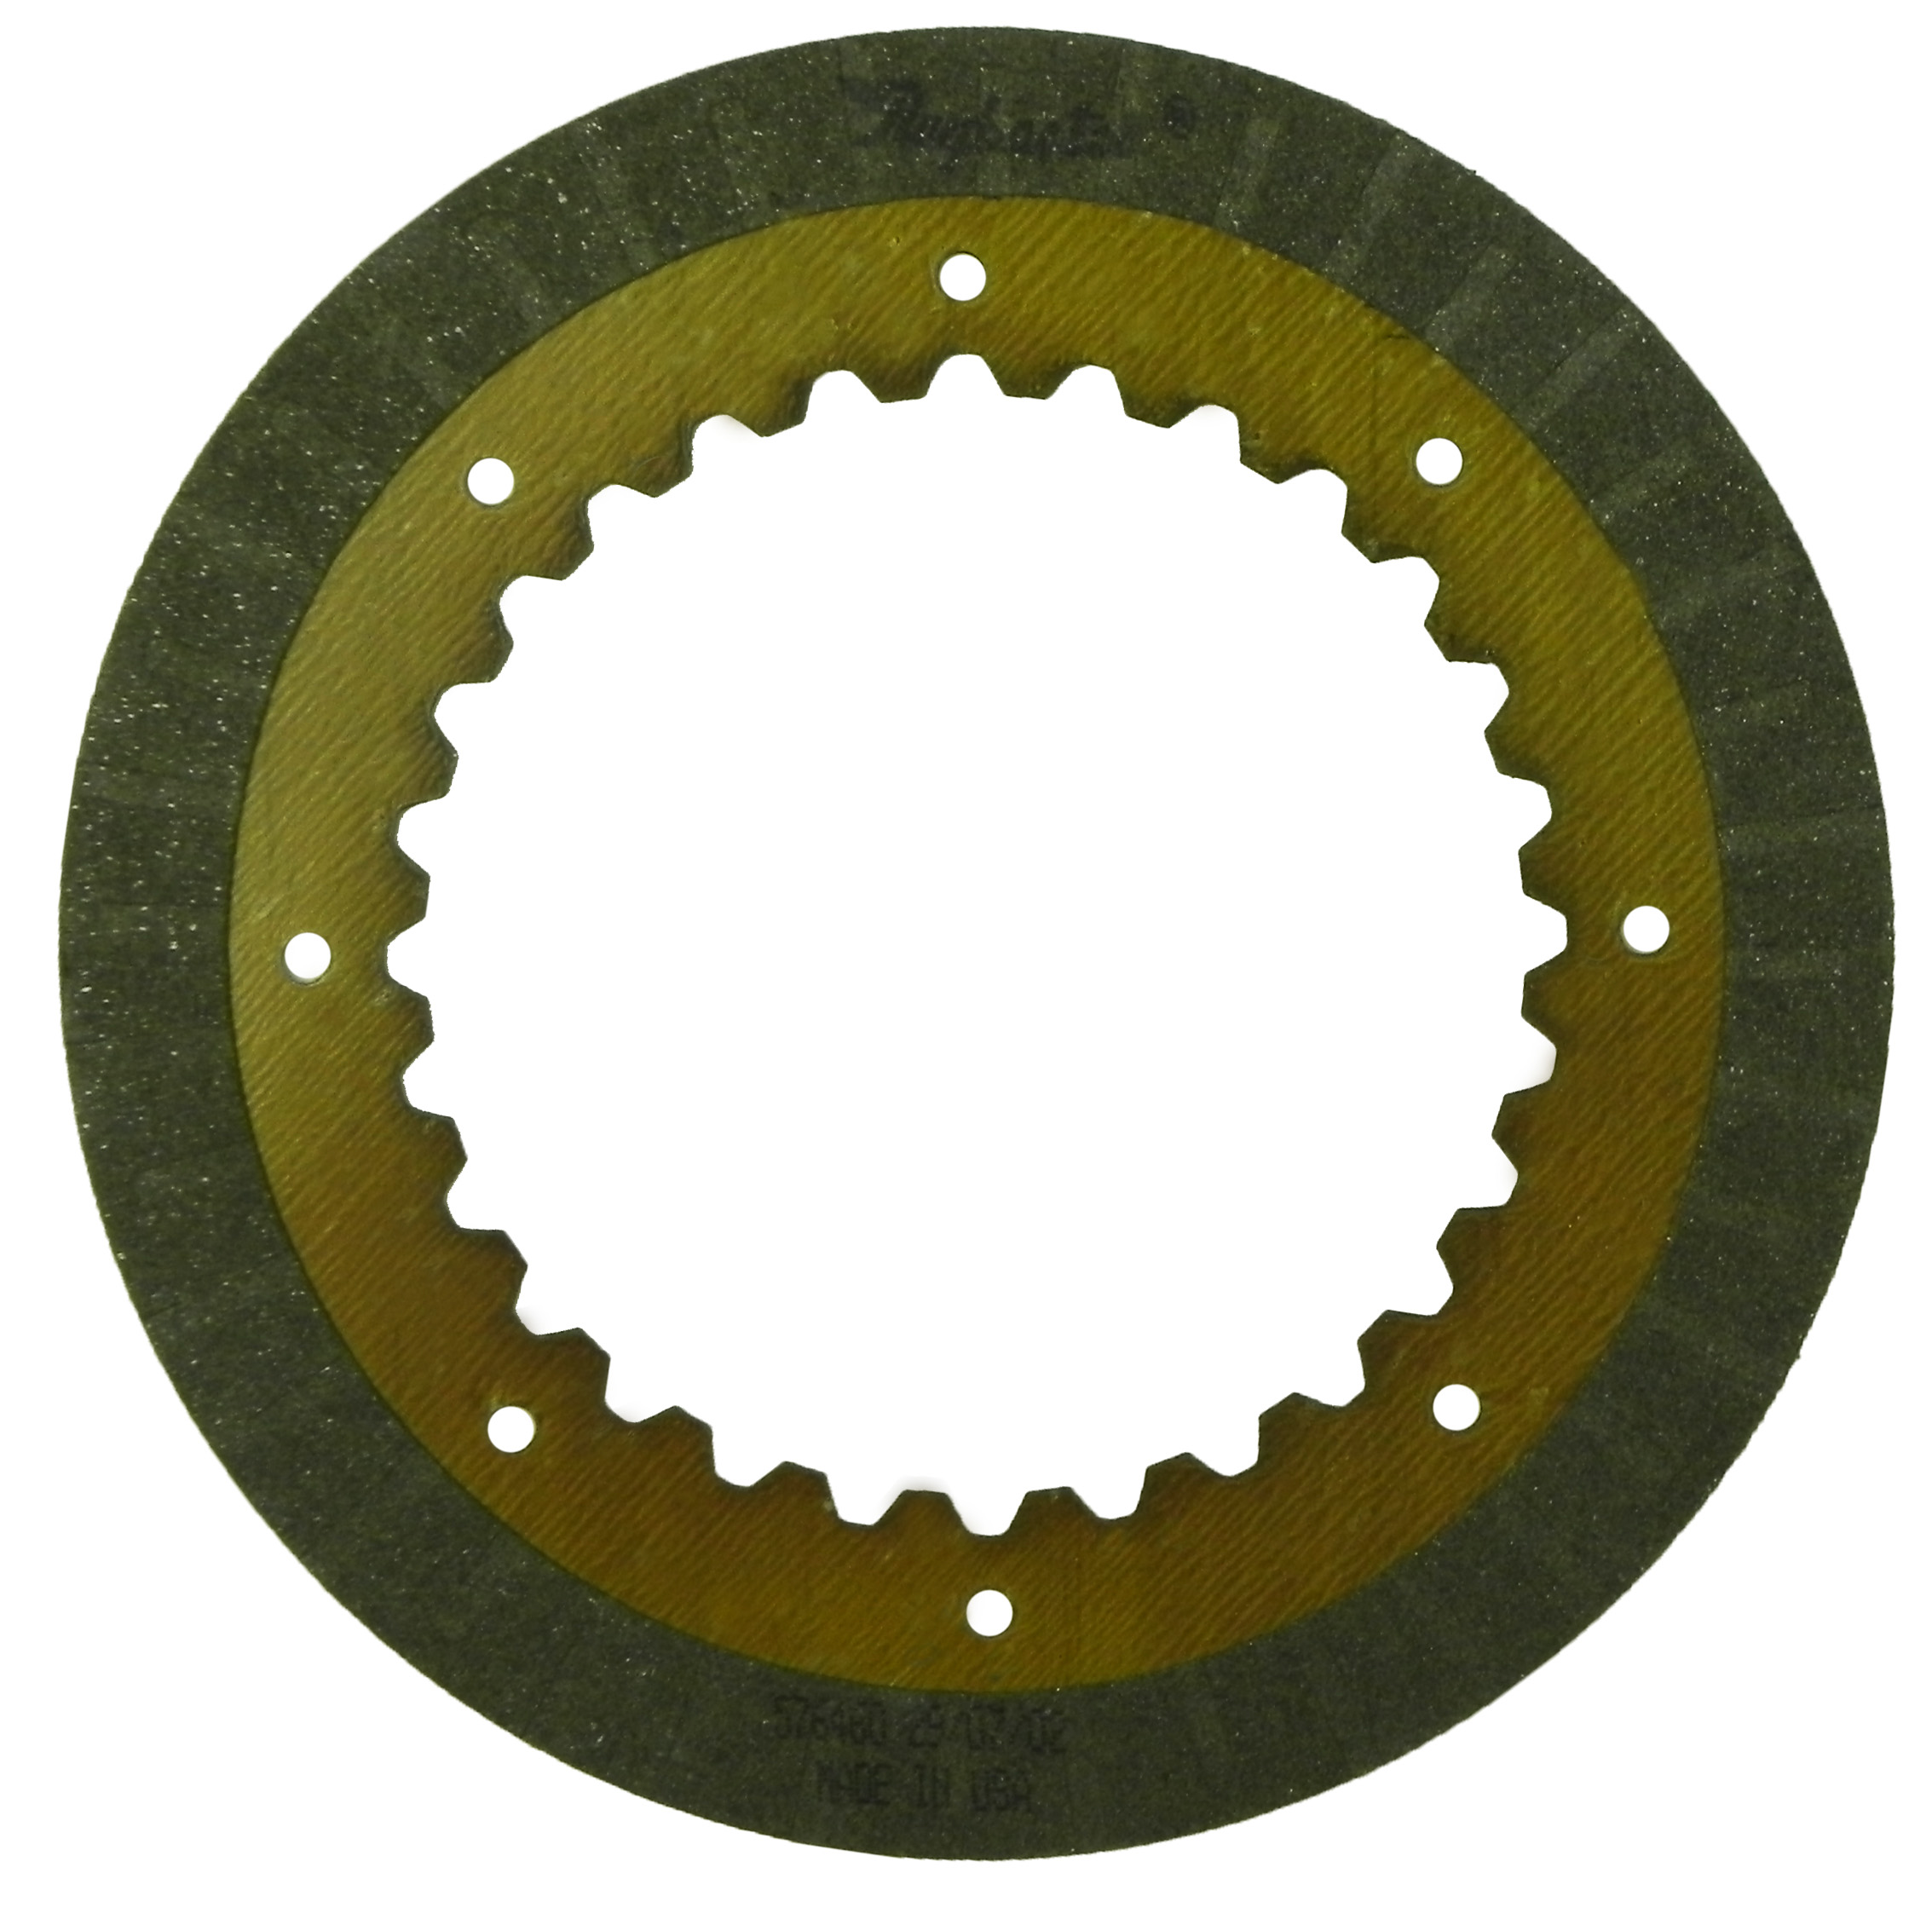 R576460 | 2001-ON Friction Clutch Plate High Energy Underdrive, 2nd High Energy